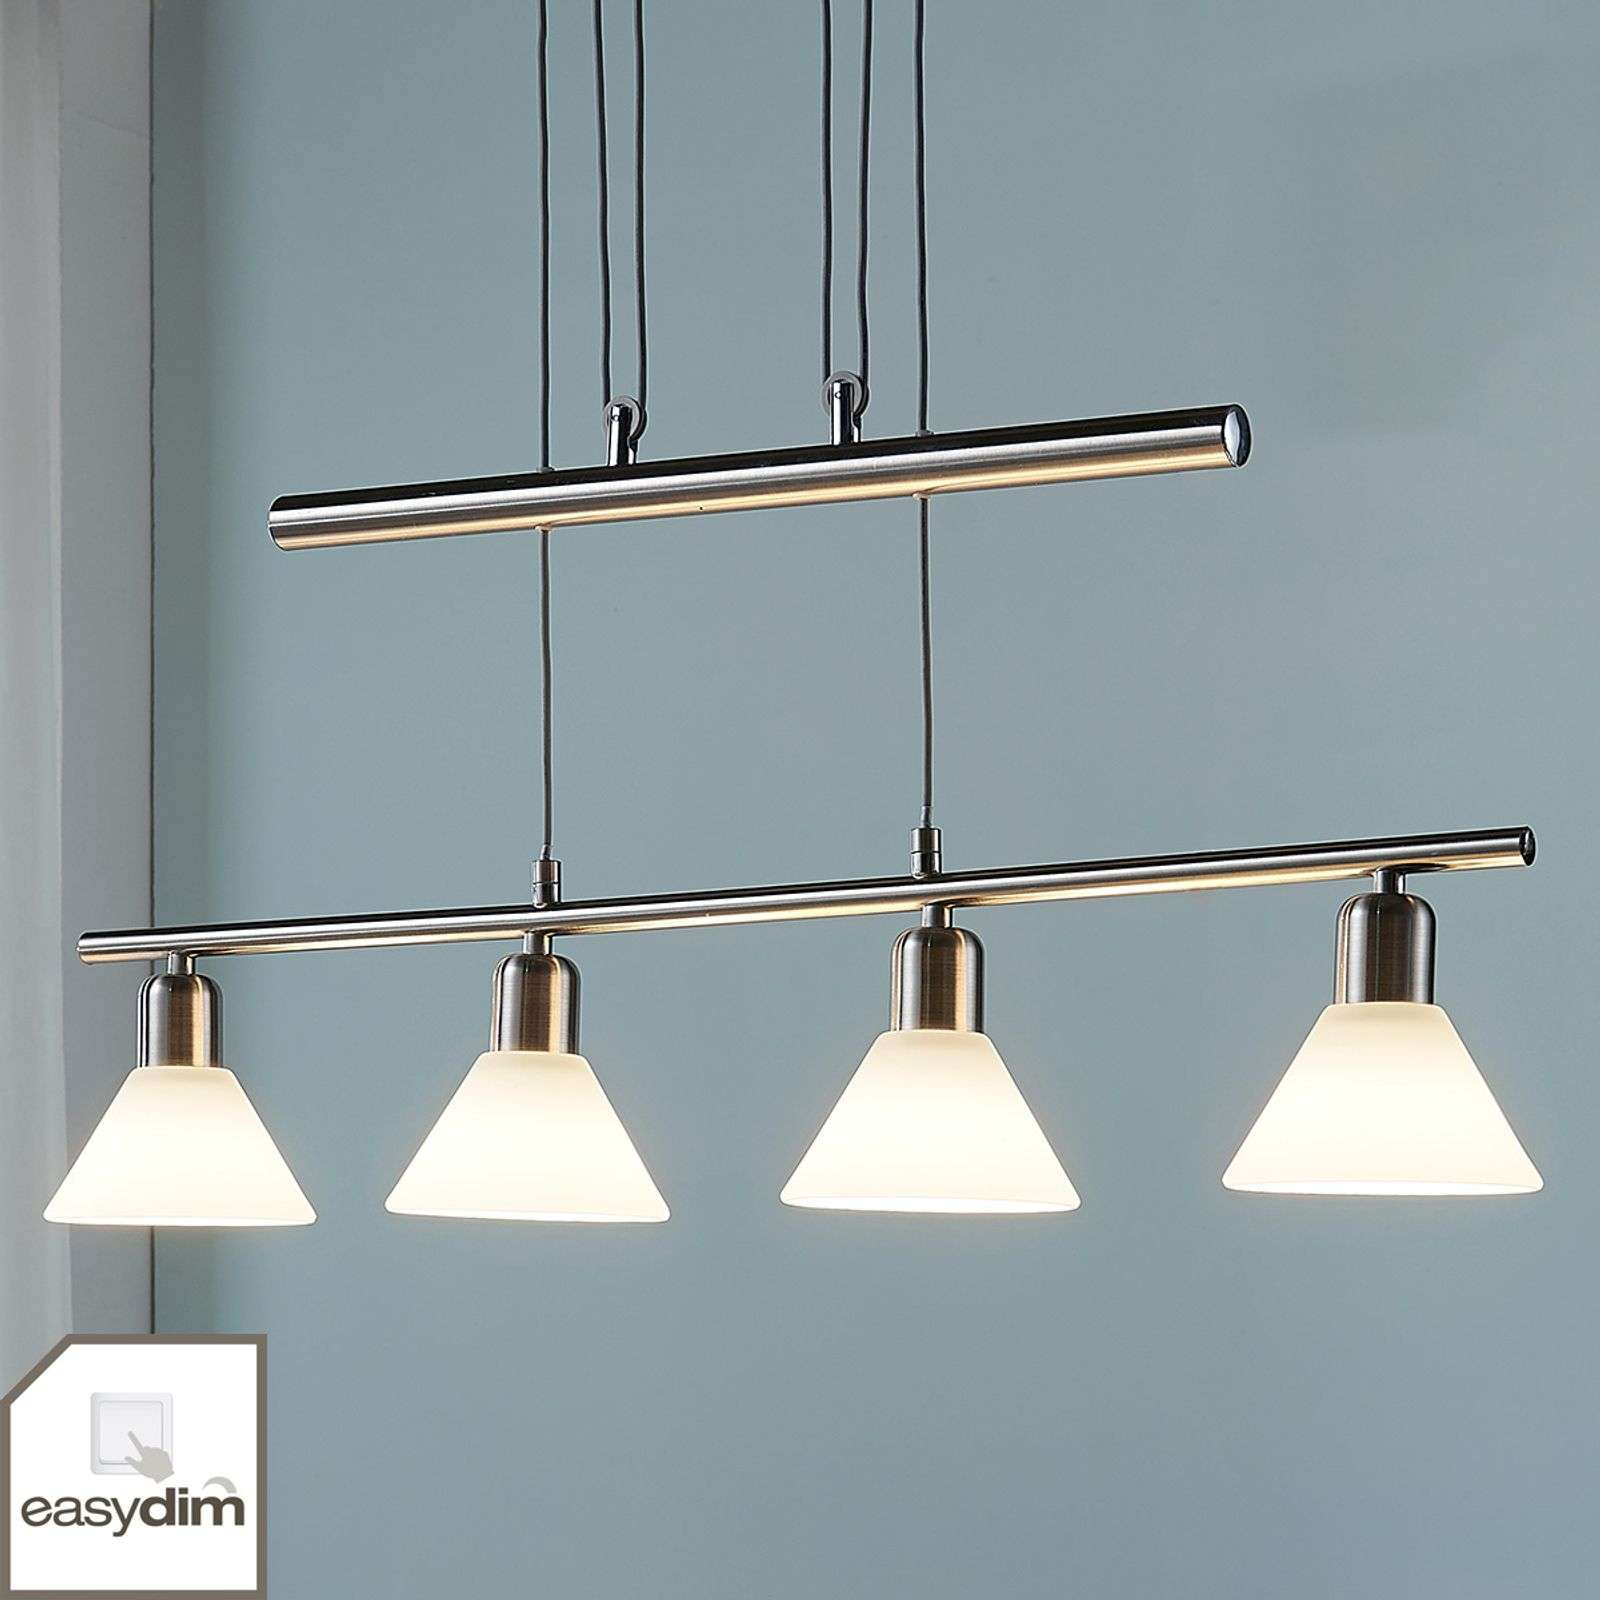 Suspension LED Eleasa Easydim couleur nickel